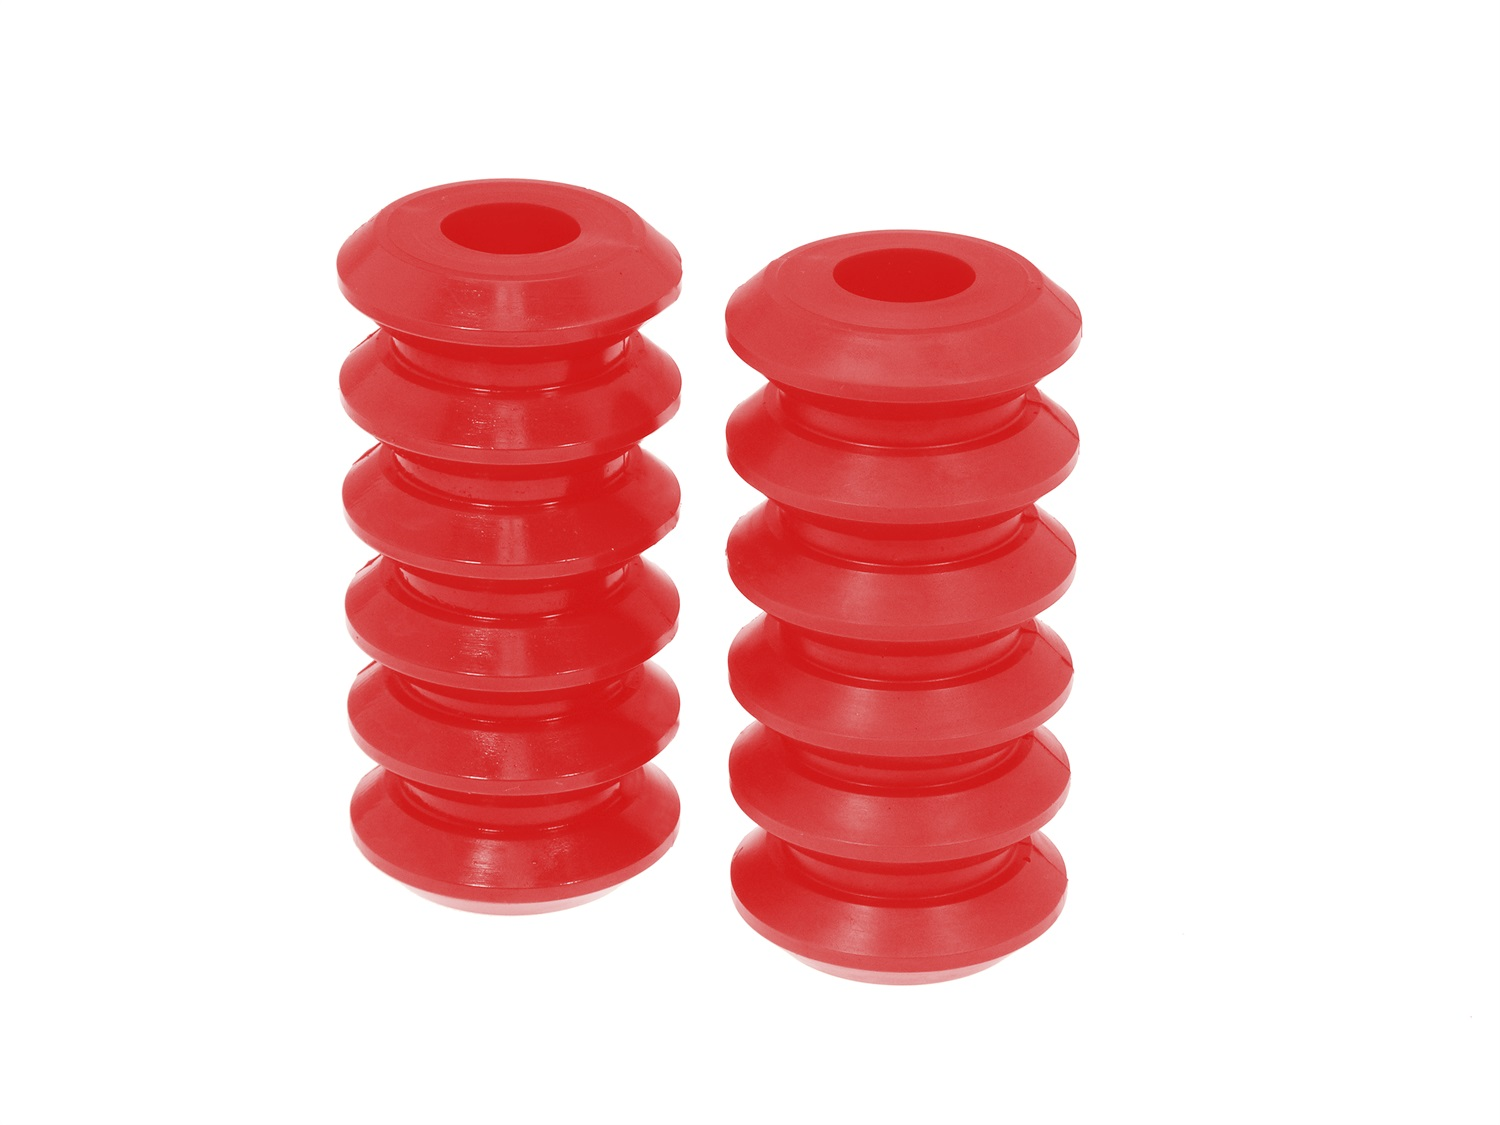 All Vehicles (Universal) Prothane Coil Spring Inserts - 7-1/2 Inch - Red